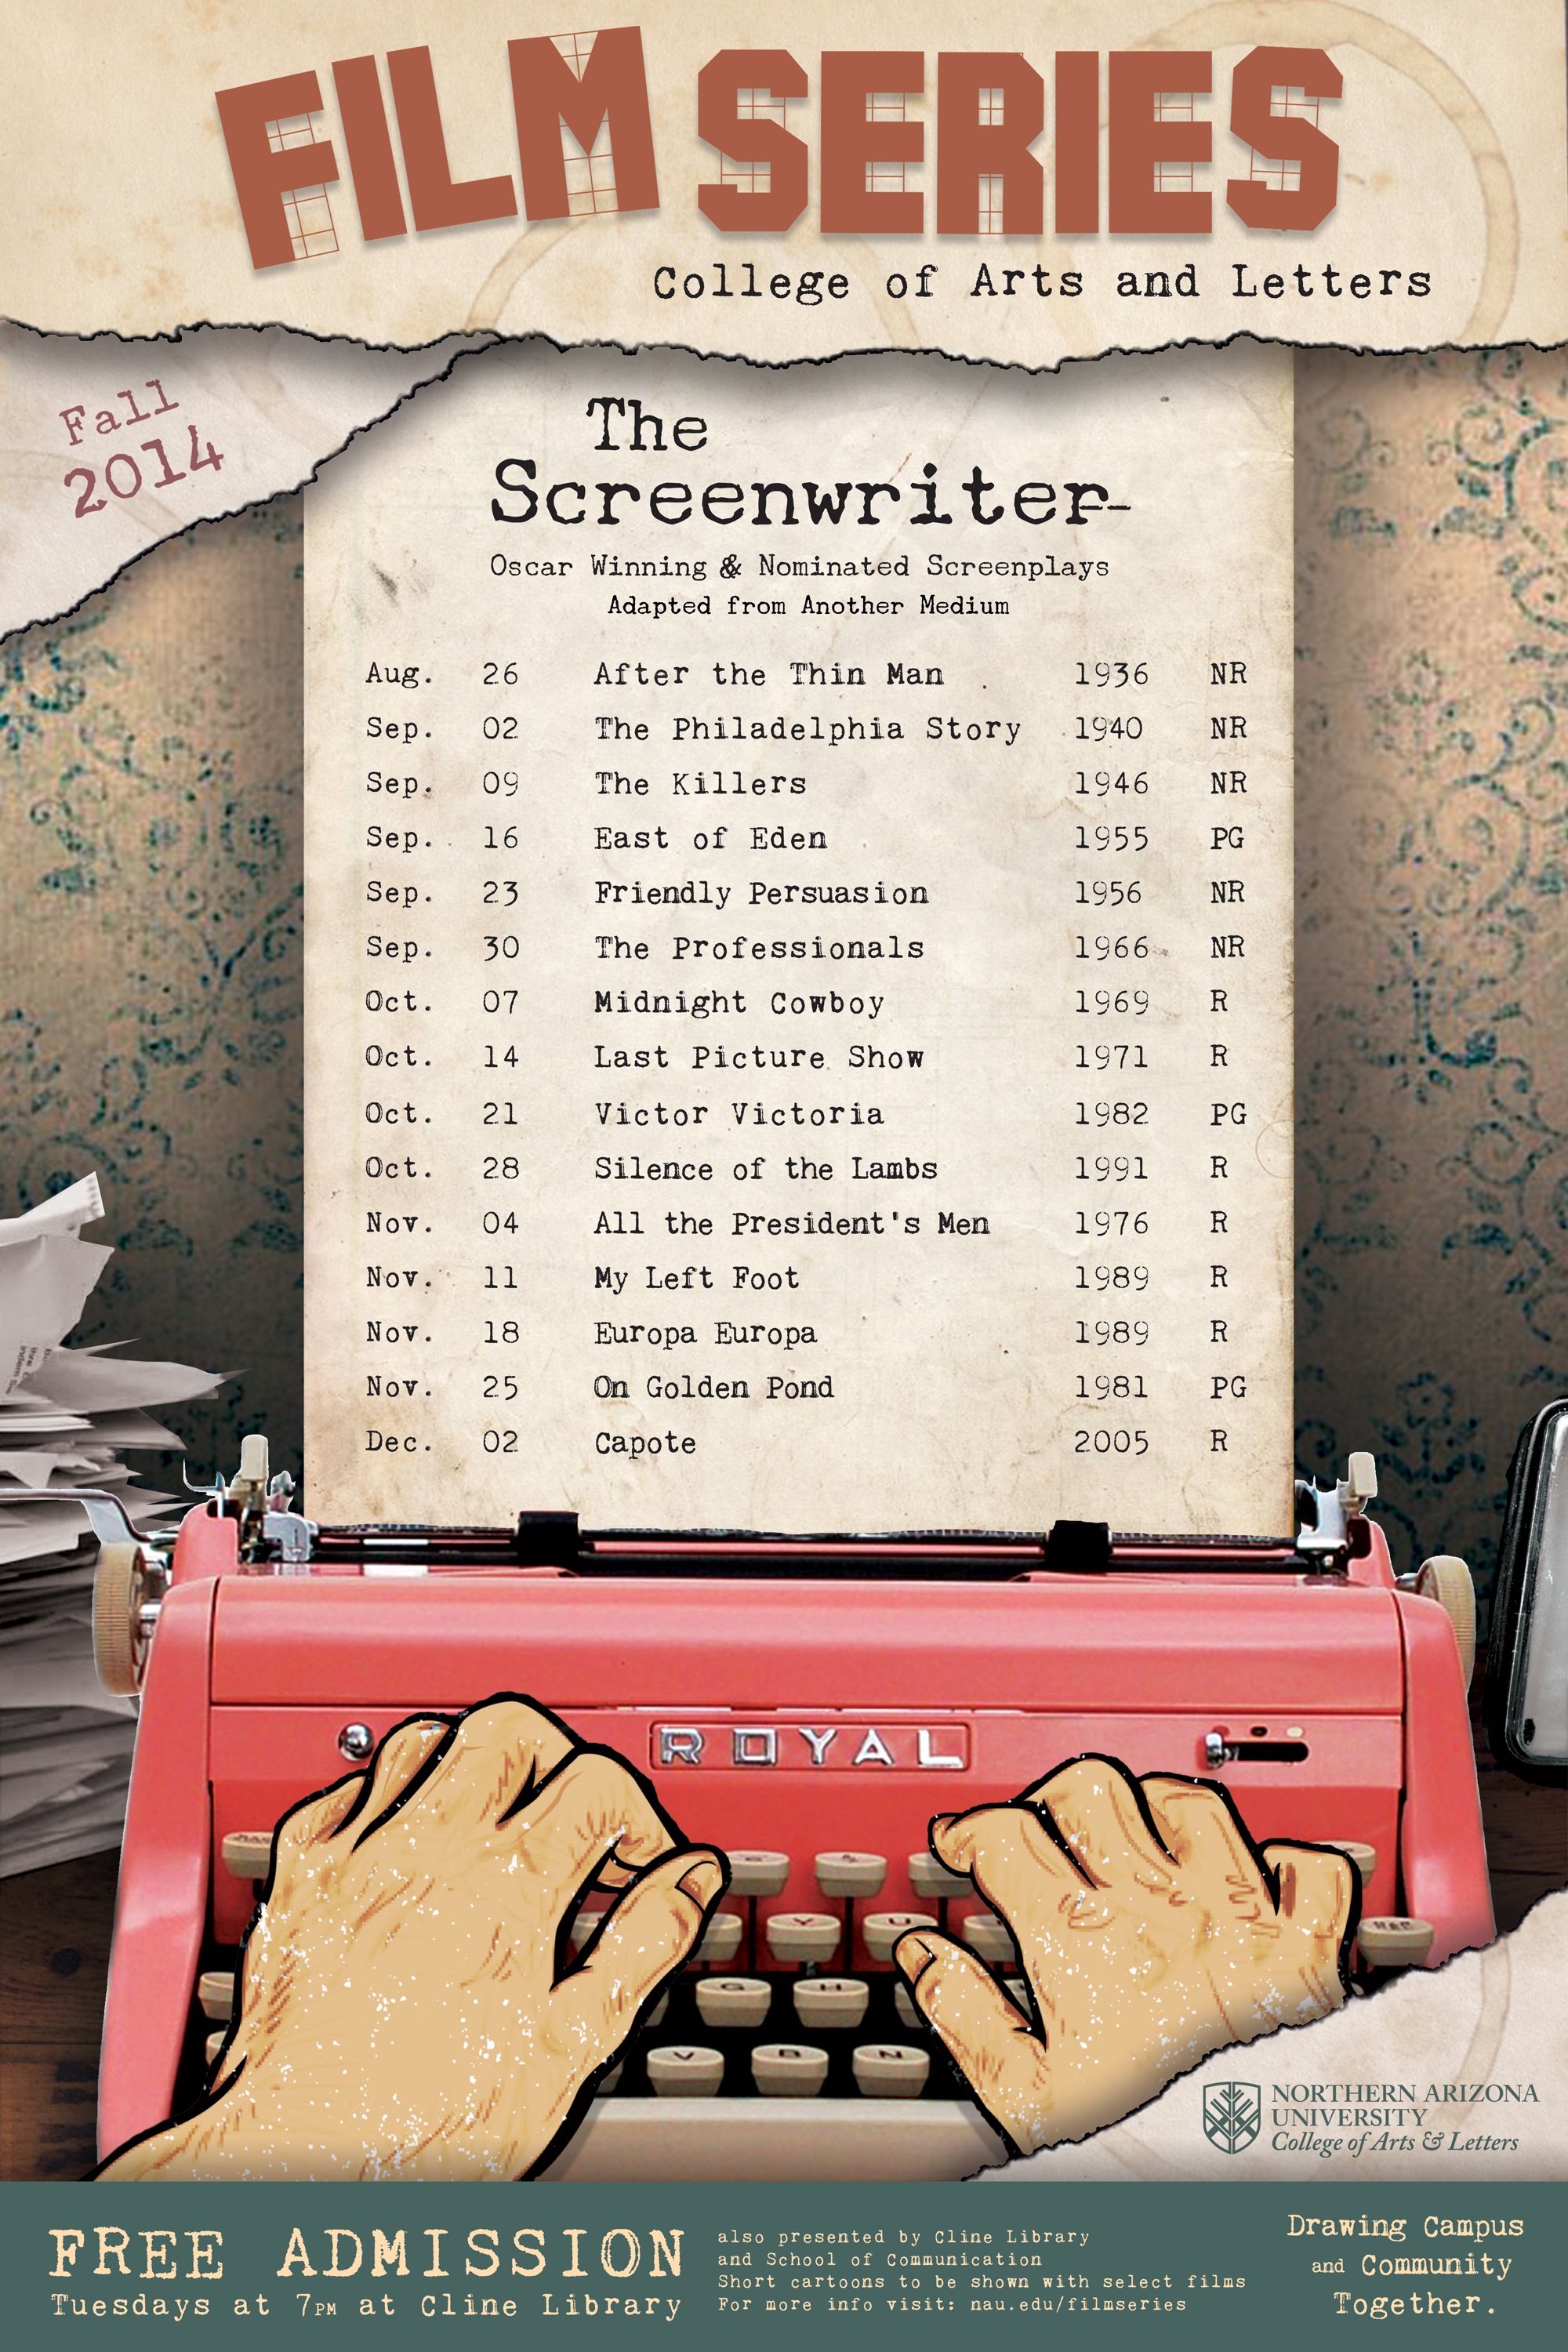 Fall 2014 College of Arts and Letters Film Series